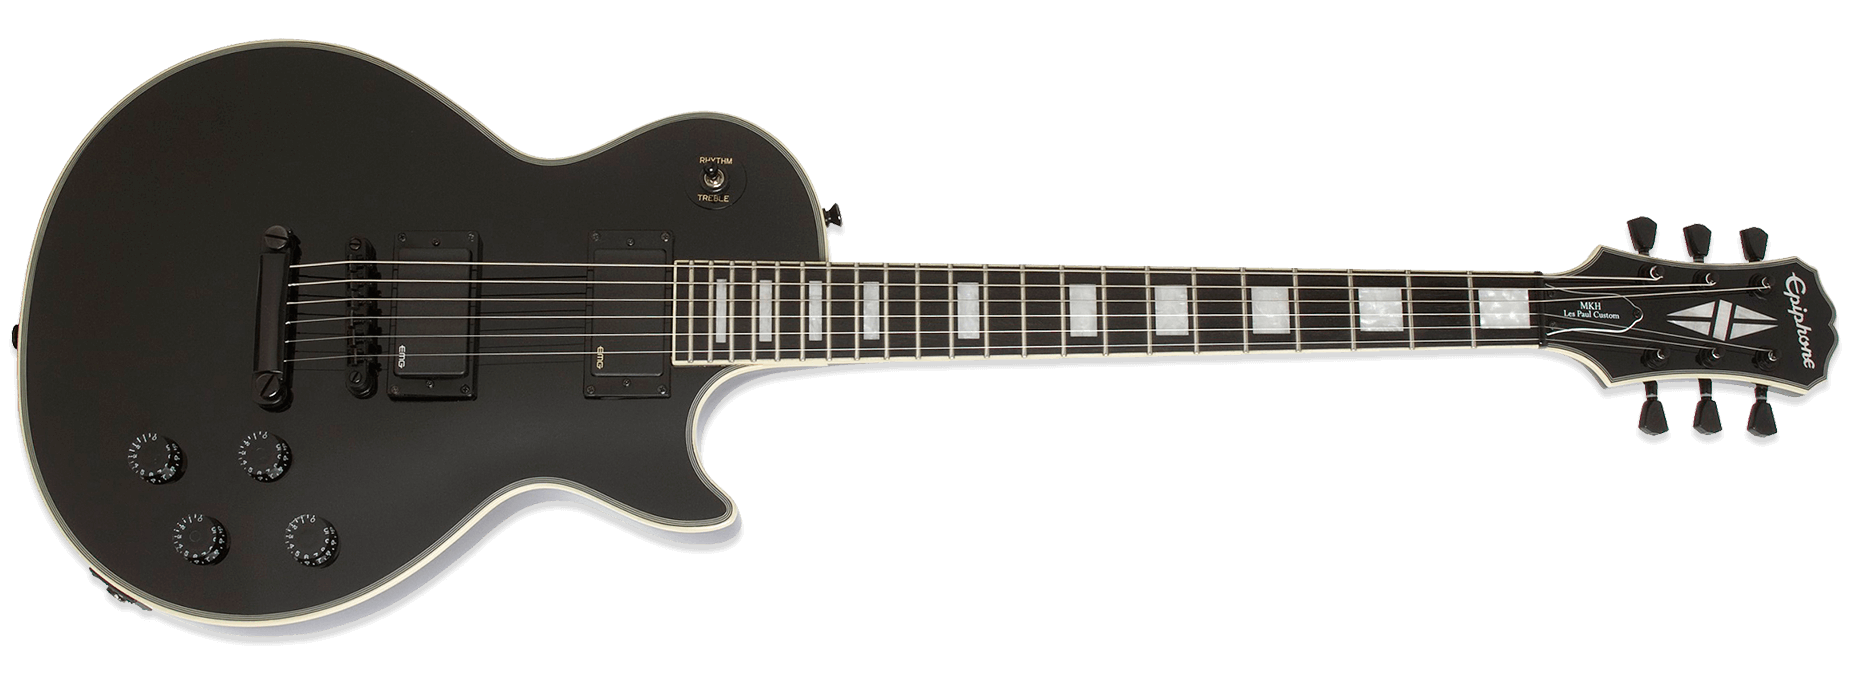 Epiphone Matthew K Heafy Les Paul Custom 6-string Ebony